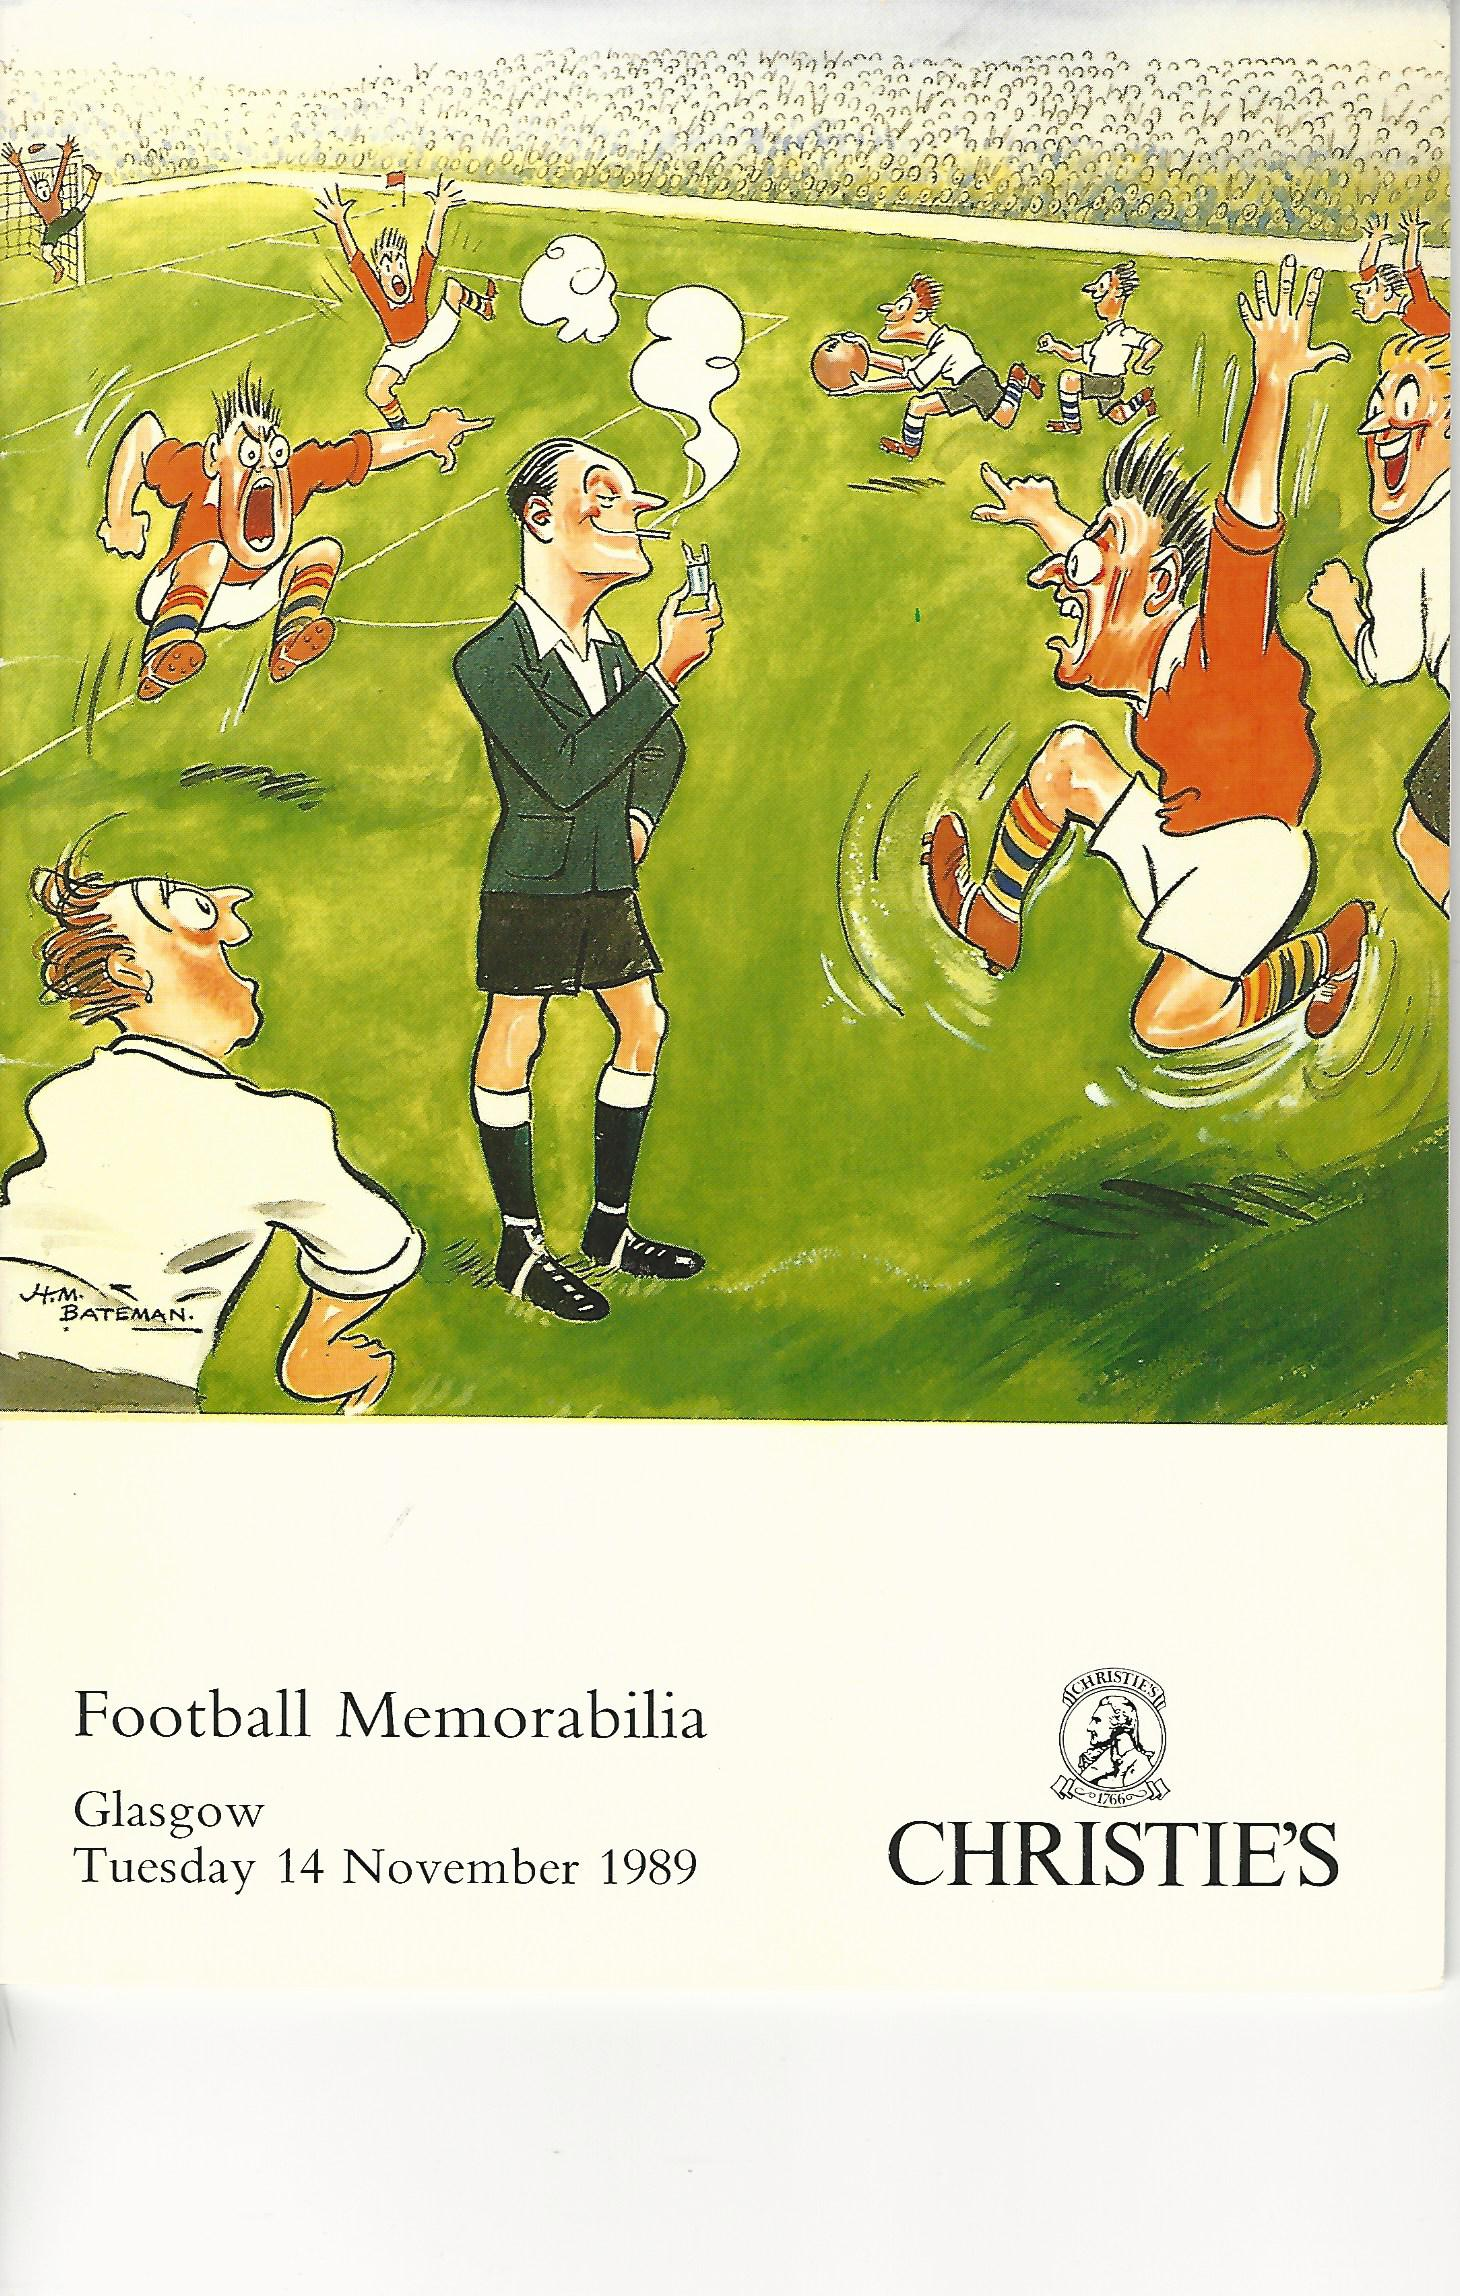 Image for Christie's Football Memorabilia, Tuesday 14 November 1989, Glagow.